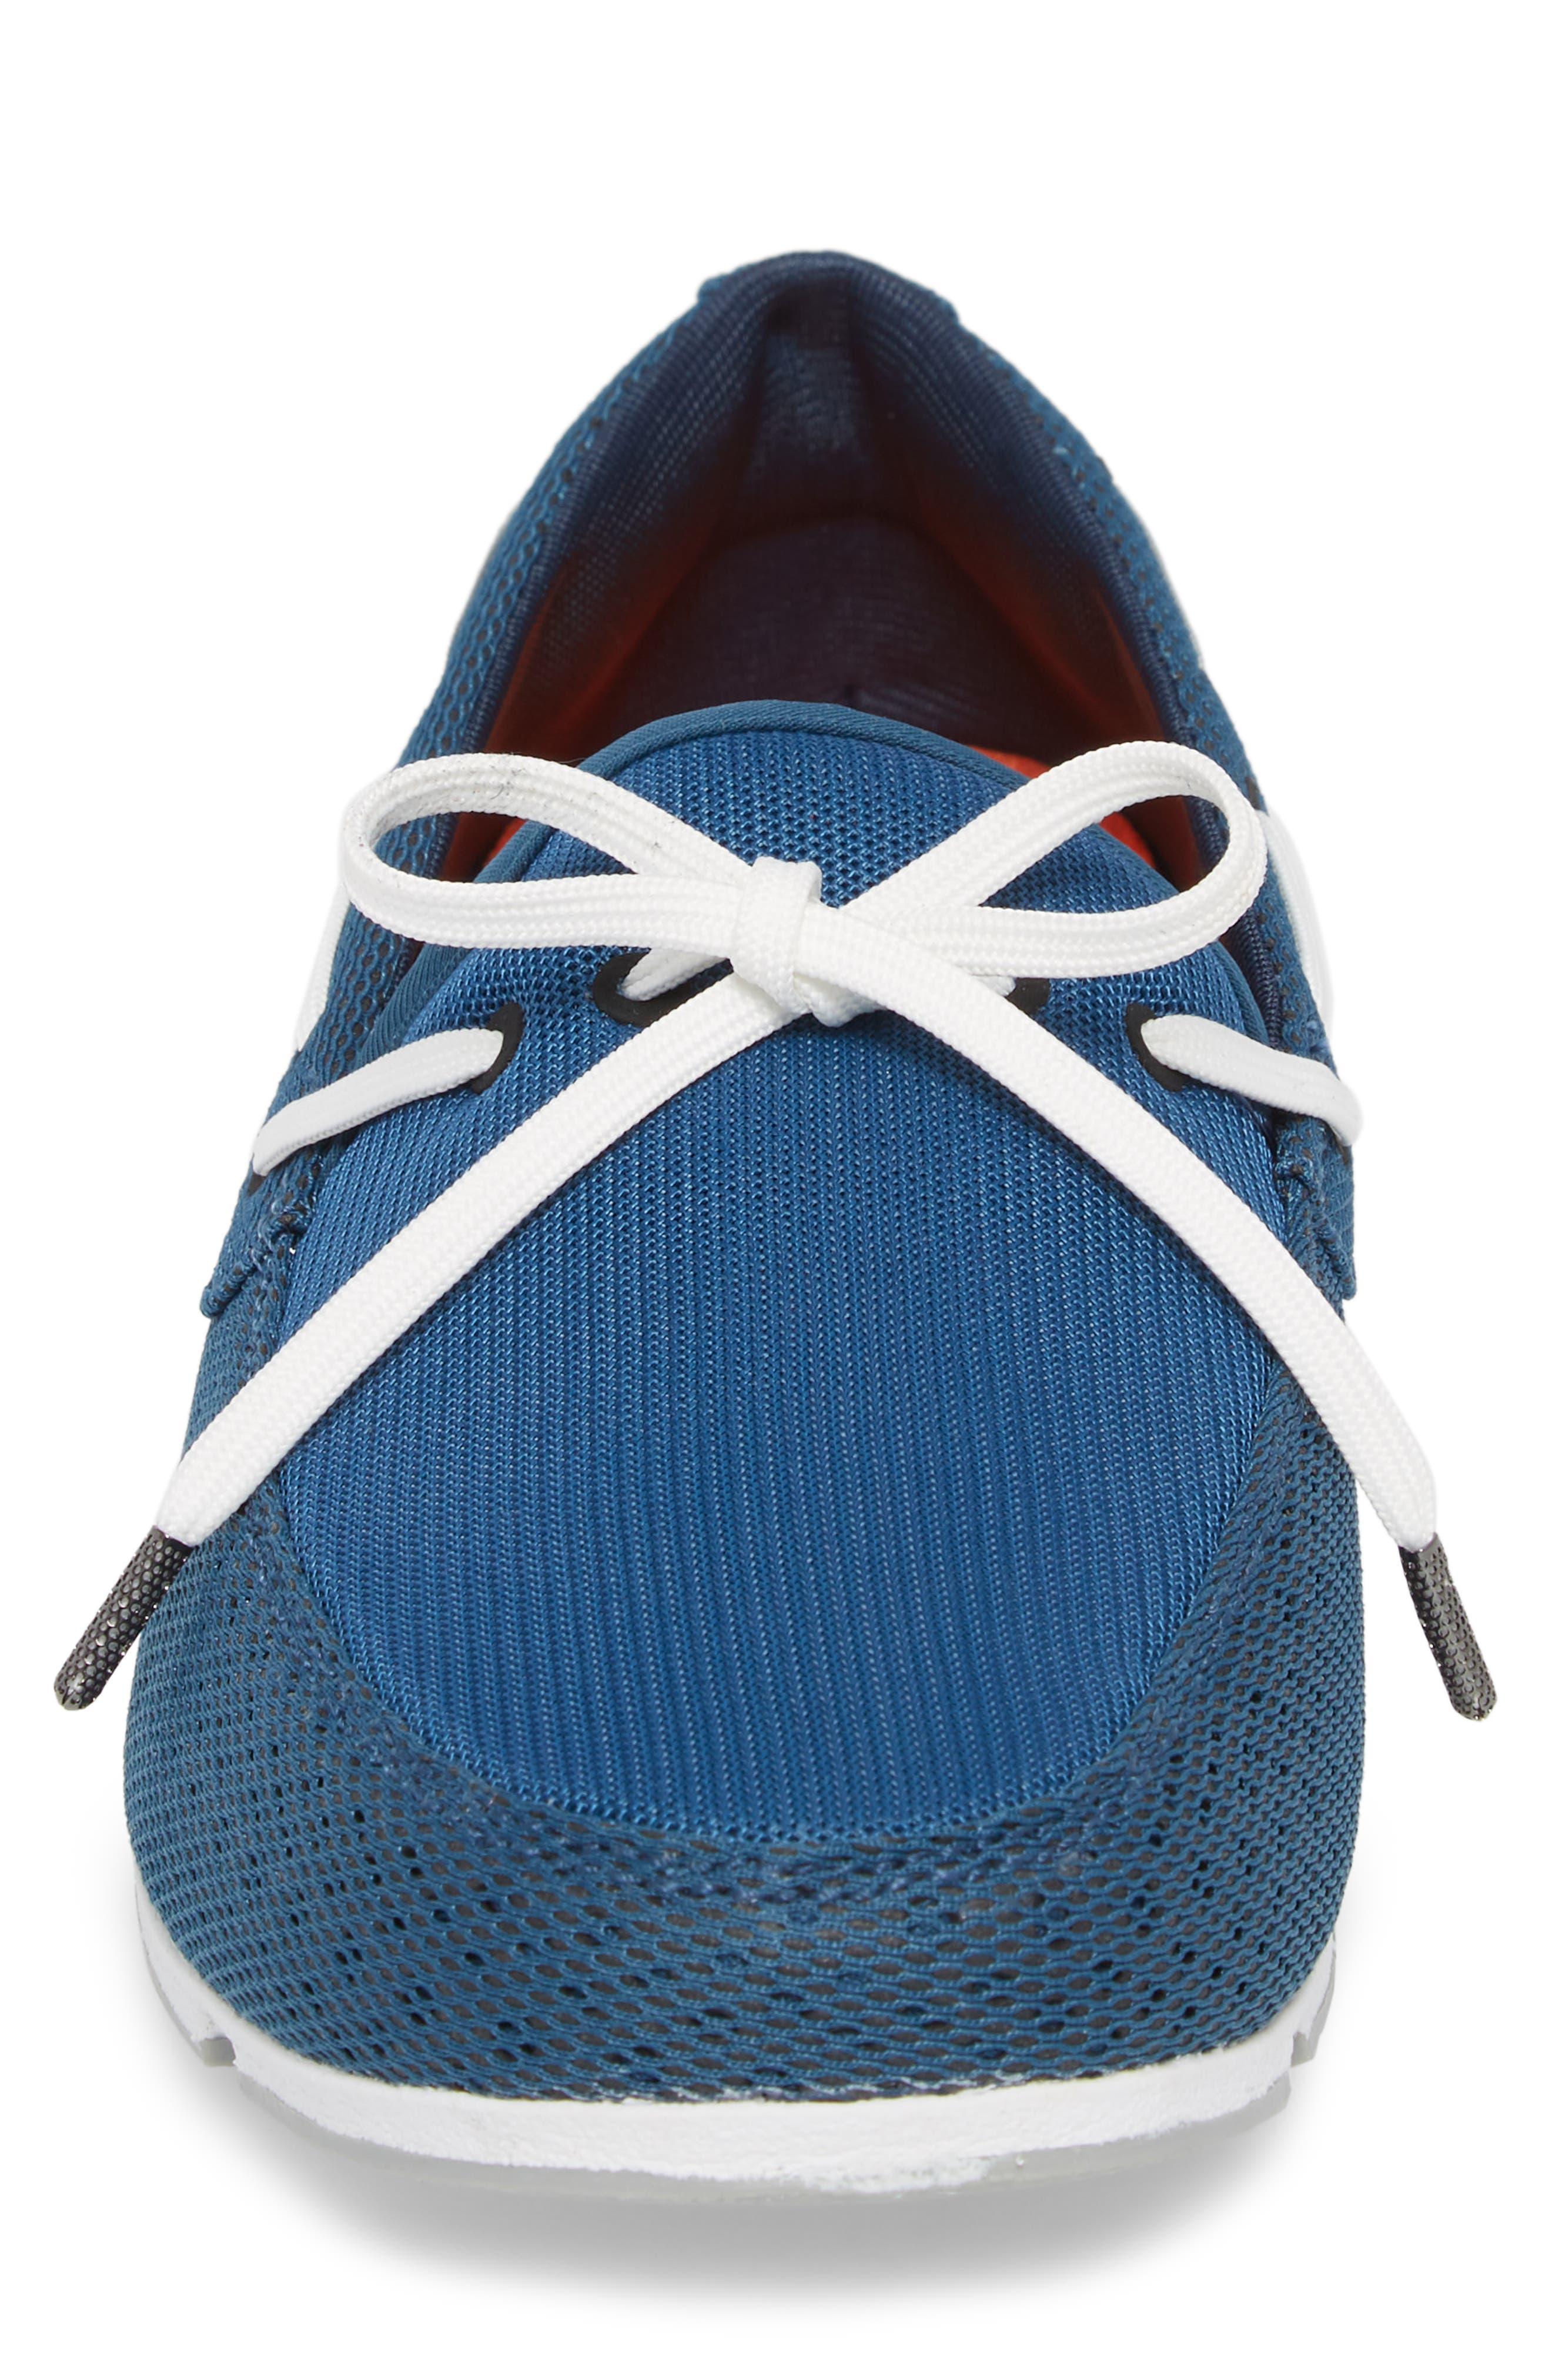 Breeze Loafer,                             Alternate thumbnail 4, color,                             BLUE/ WHITE